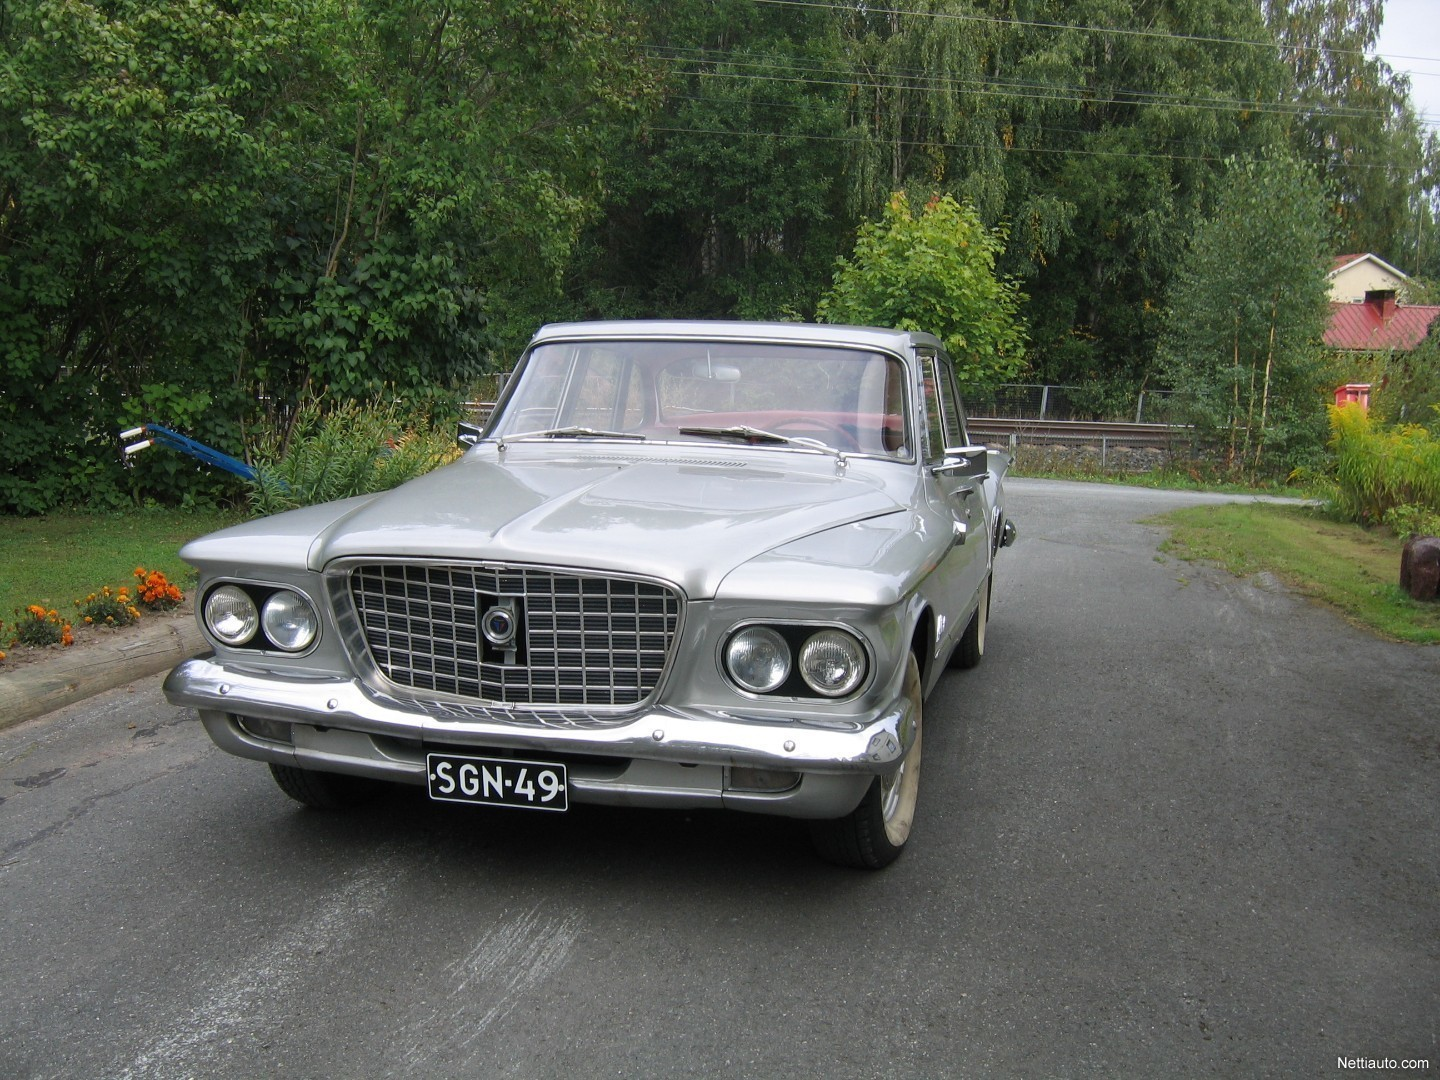 Plymouth Valiant V200 4d Sedan 1960 Used Vehicle For Sale Previous Next